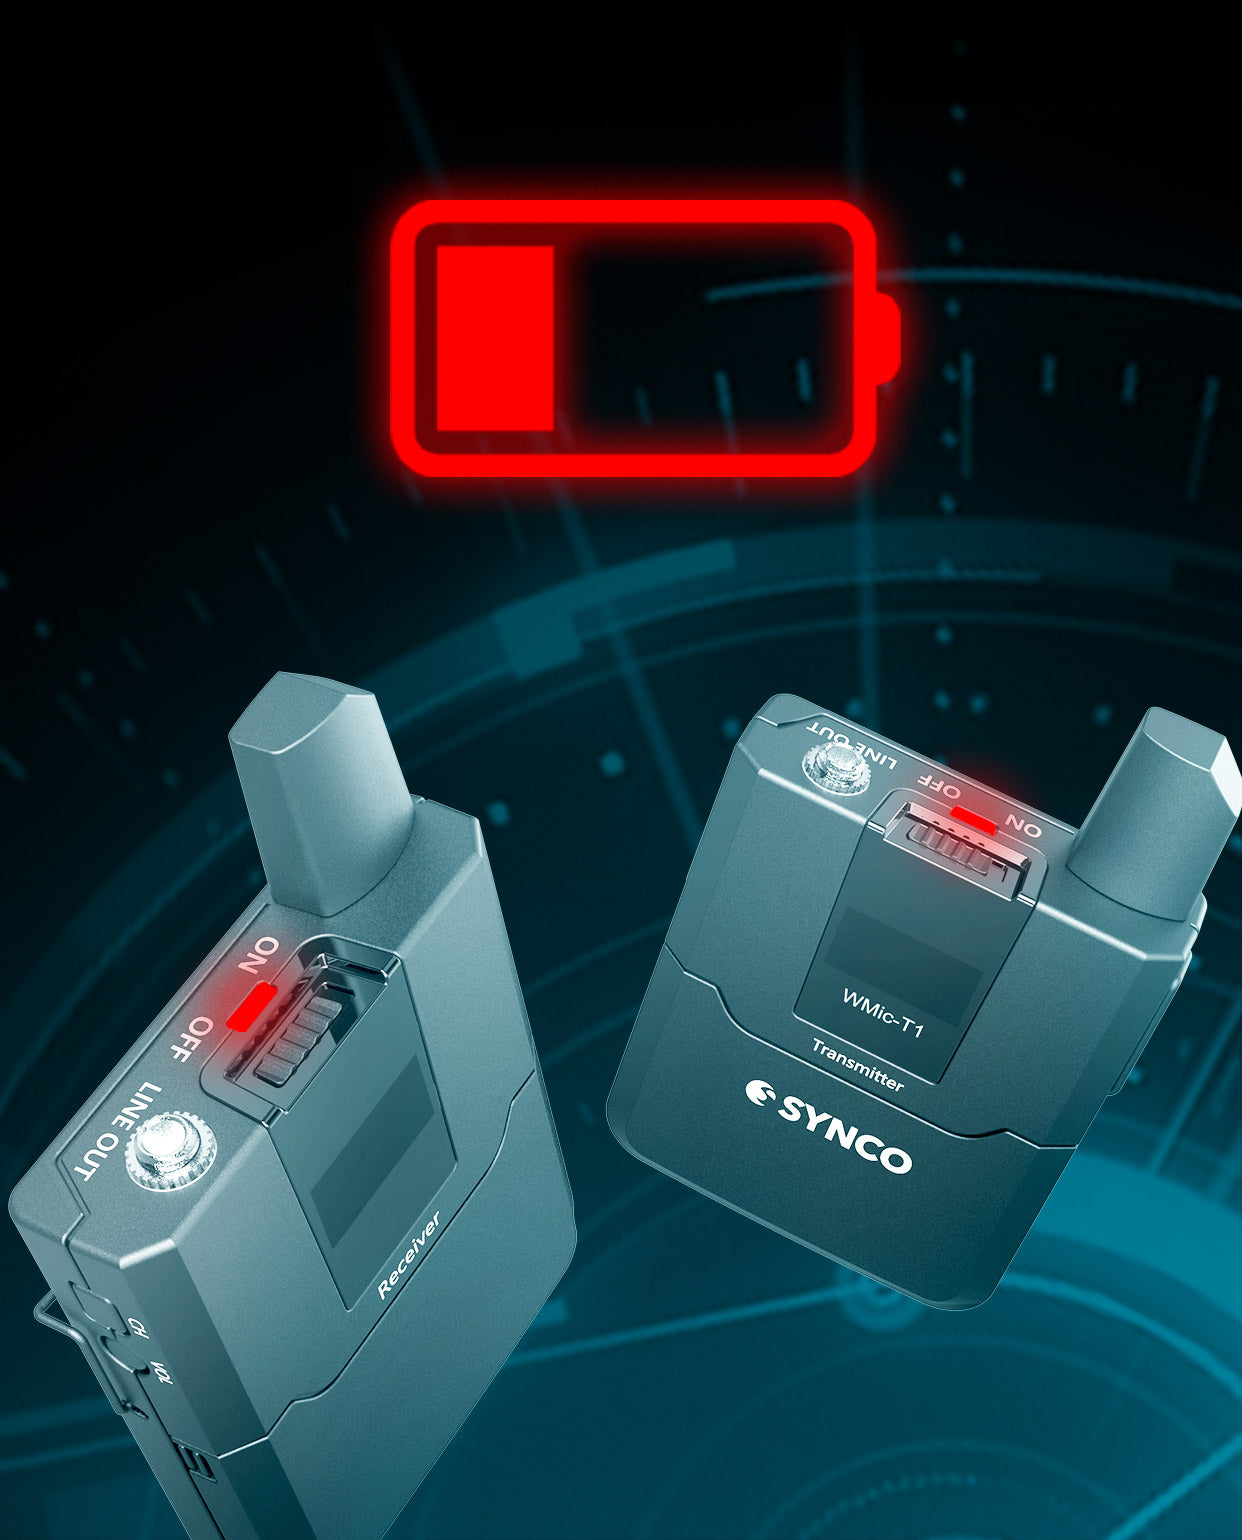 SYNCO WMic-T1 Low Battery Warning